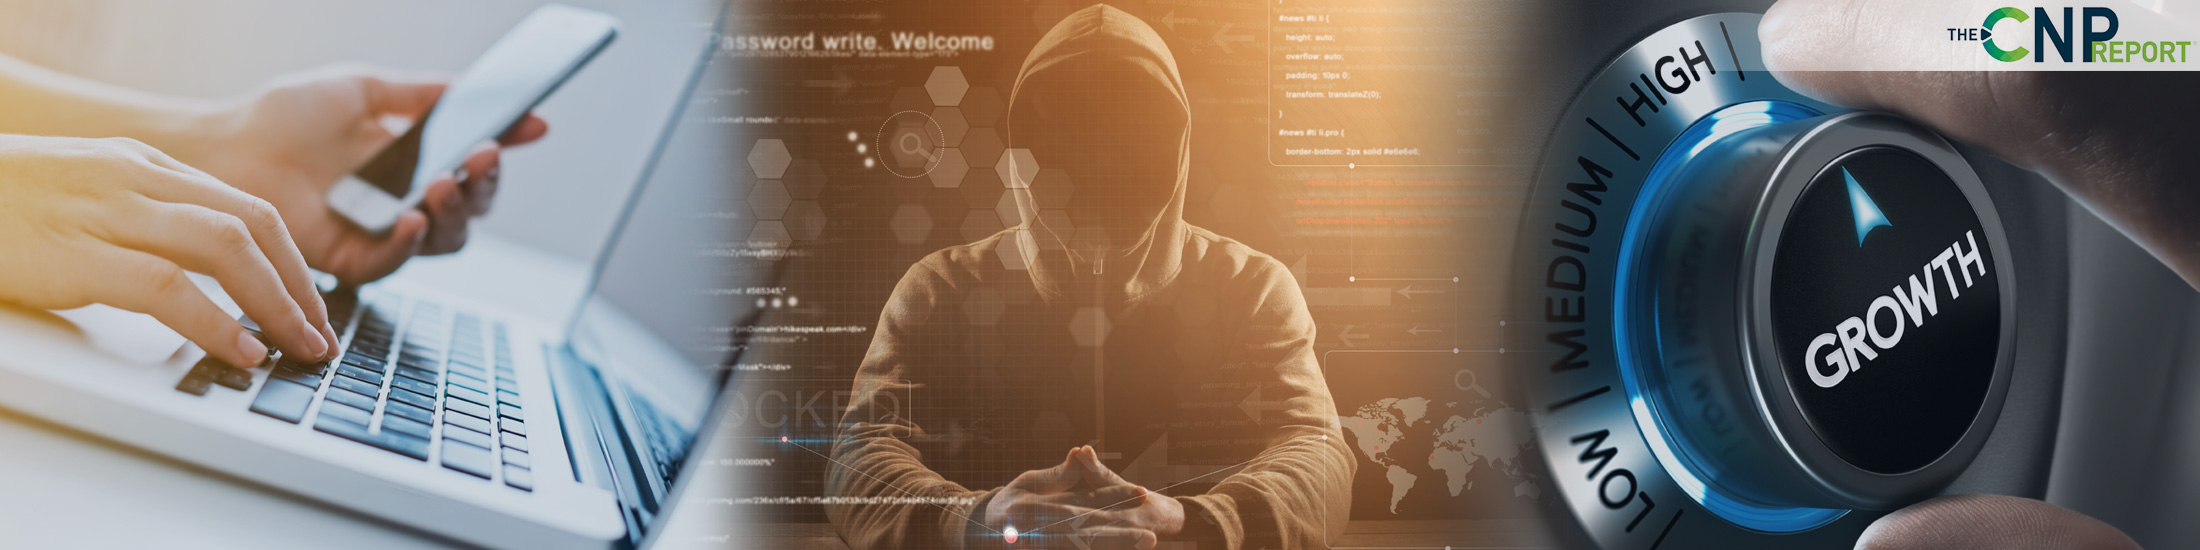 Online Fraud Losses will Double in Five Years: Report